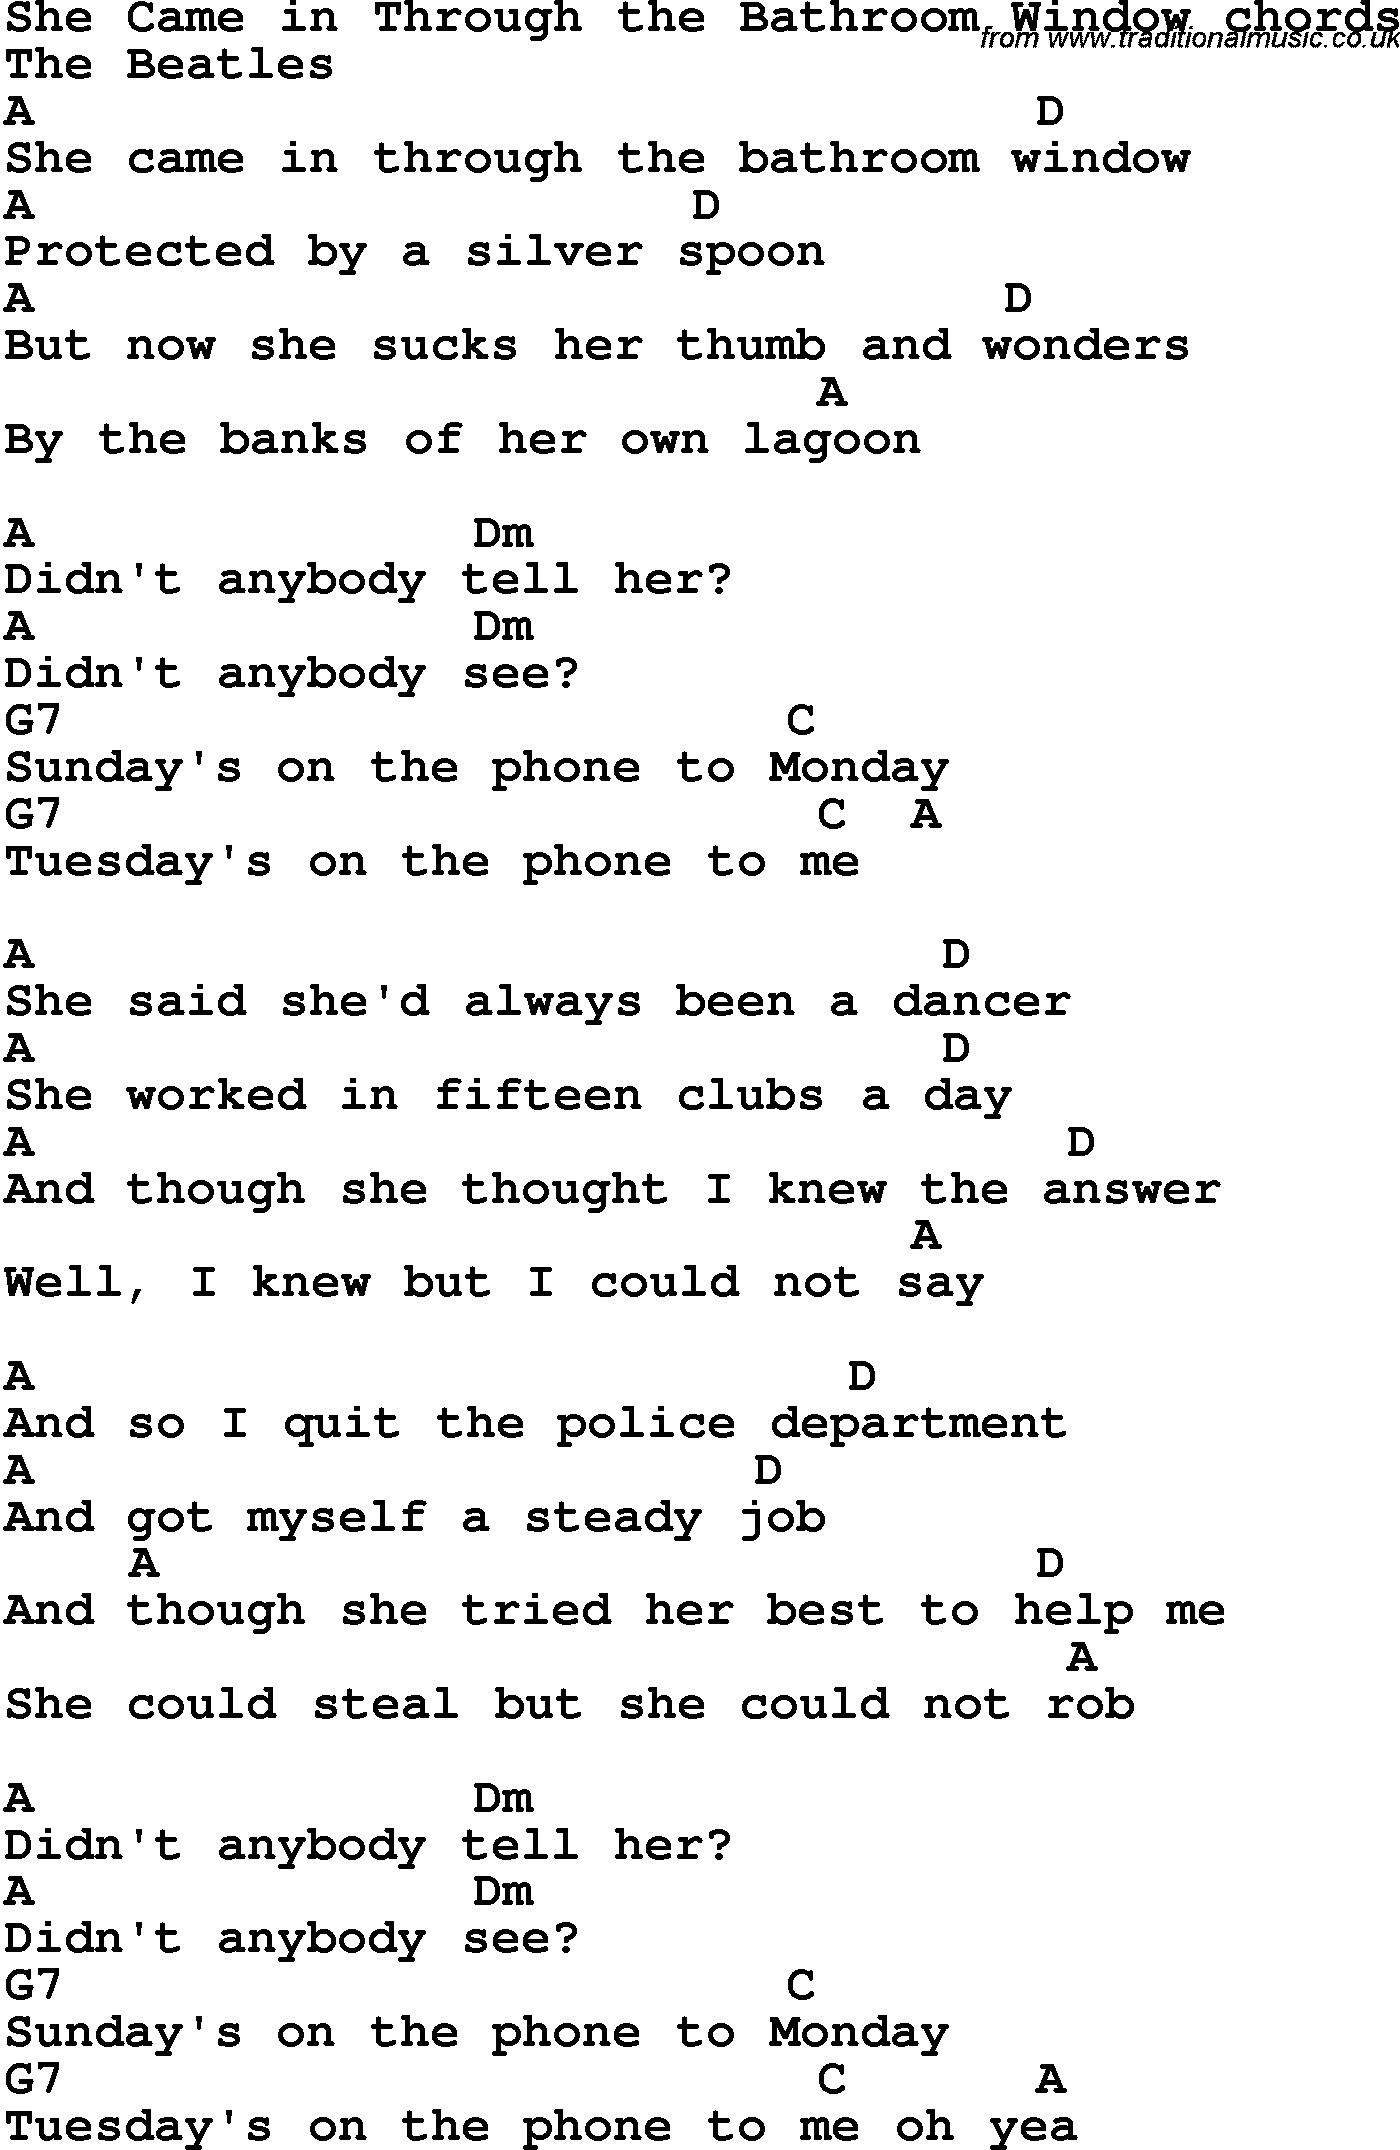 Bathroom Window Lyrics song lyrics with guitar chords for she came in through the